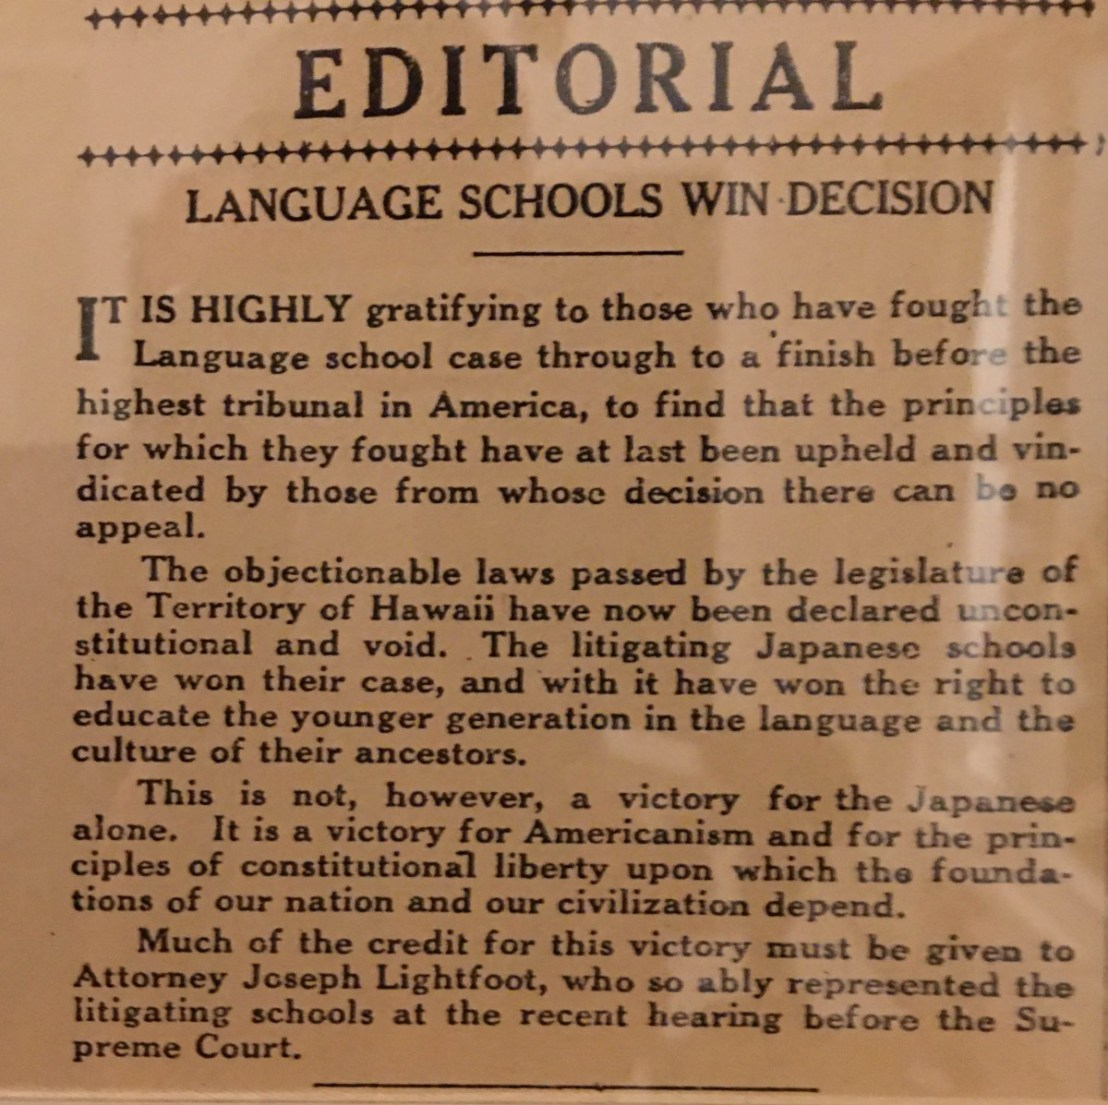 Newspaper Editorial on US Supreme Court Decision